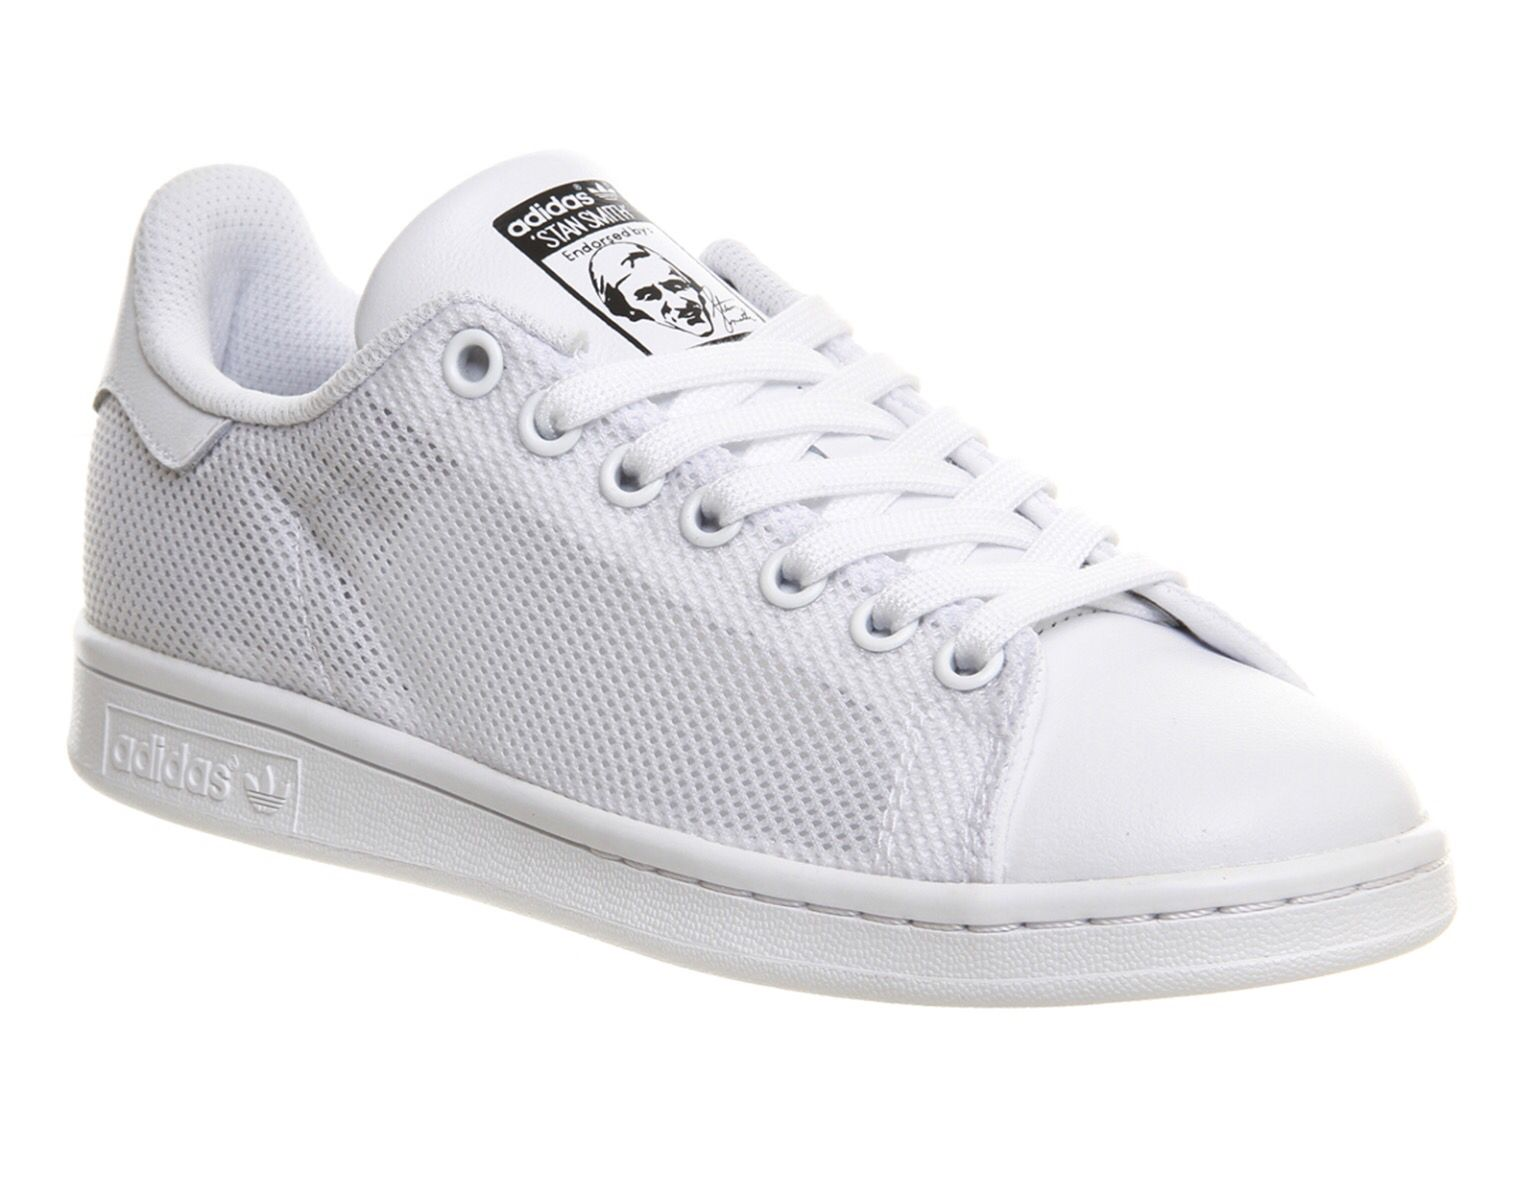 Adidas Stan Smith mesh trainers